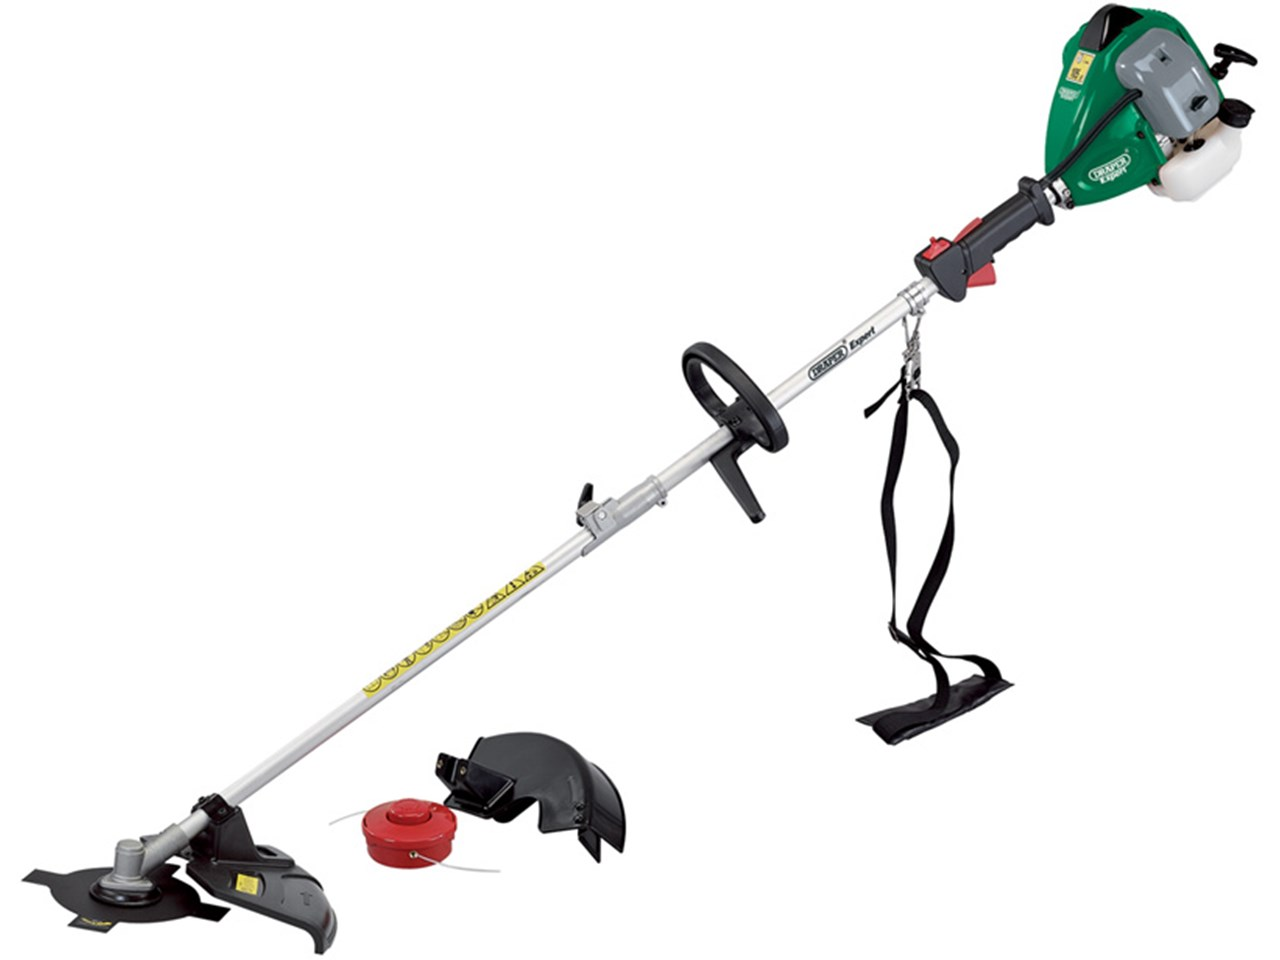 Draper GTP3222 30cc Petrol Brush Cutter And Line Trimmer